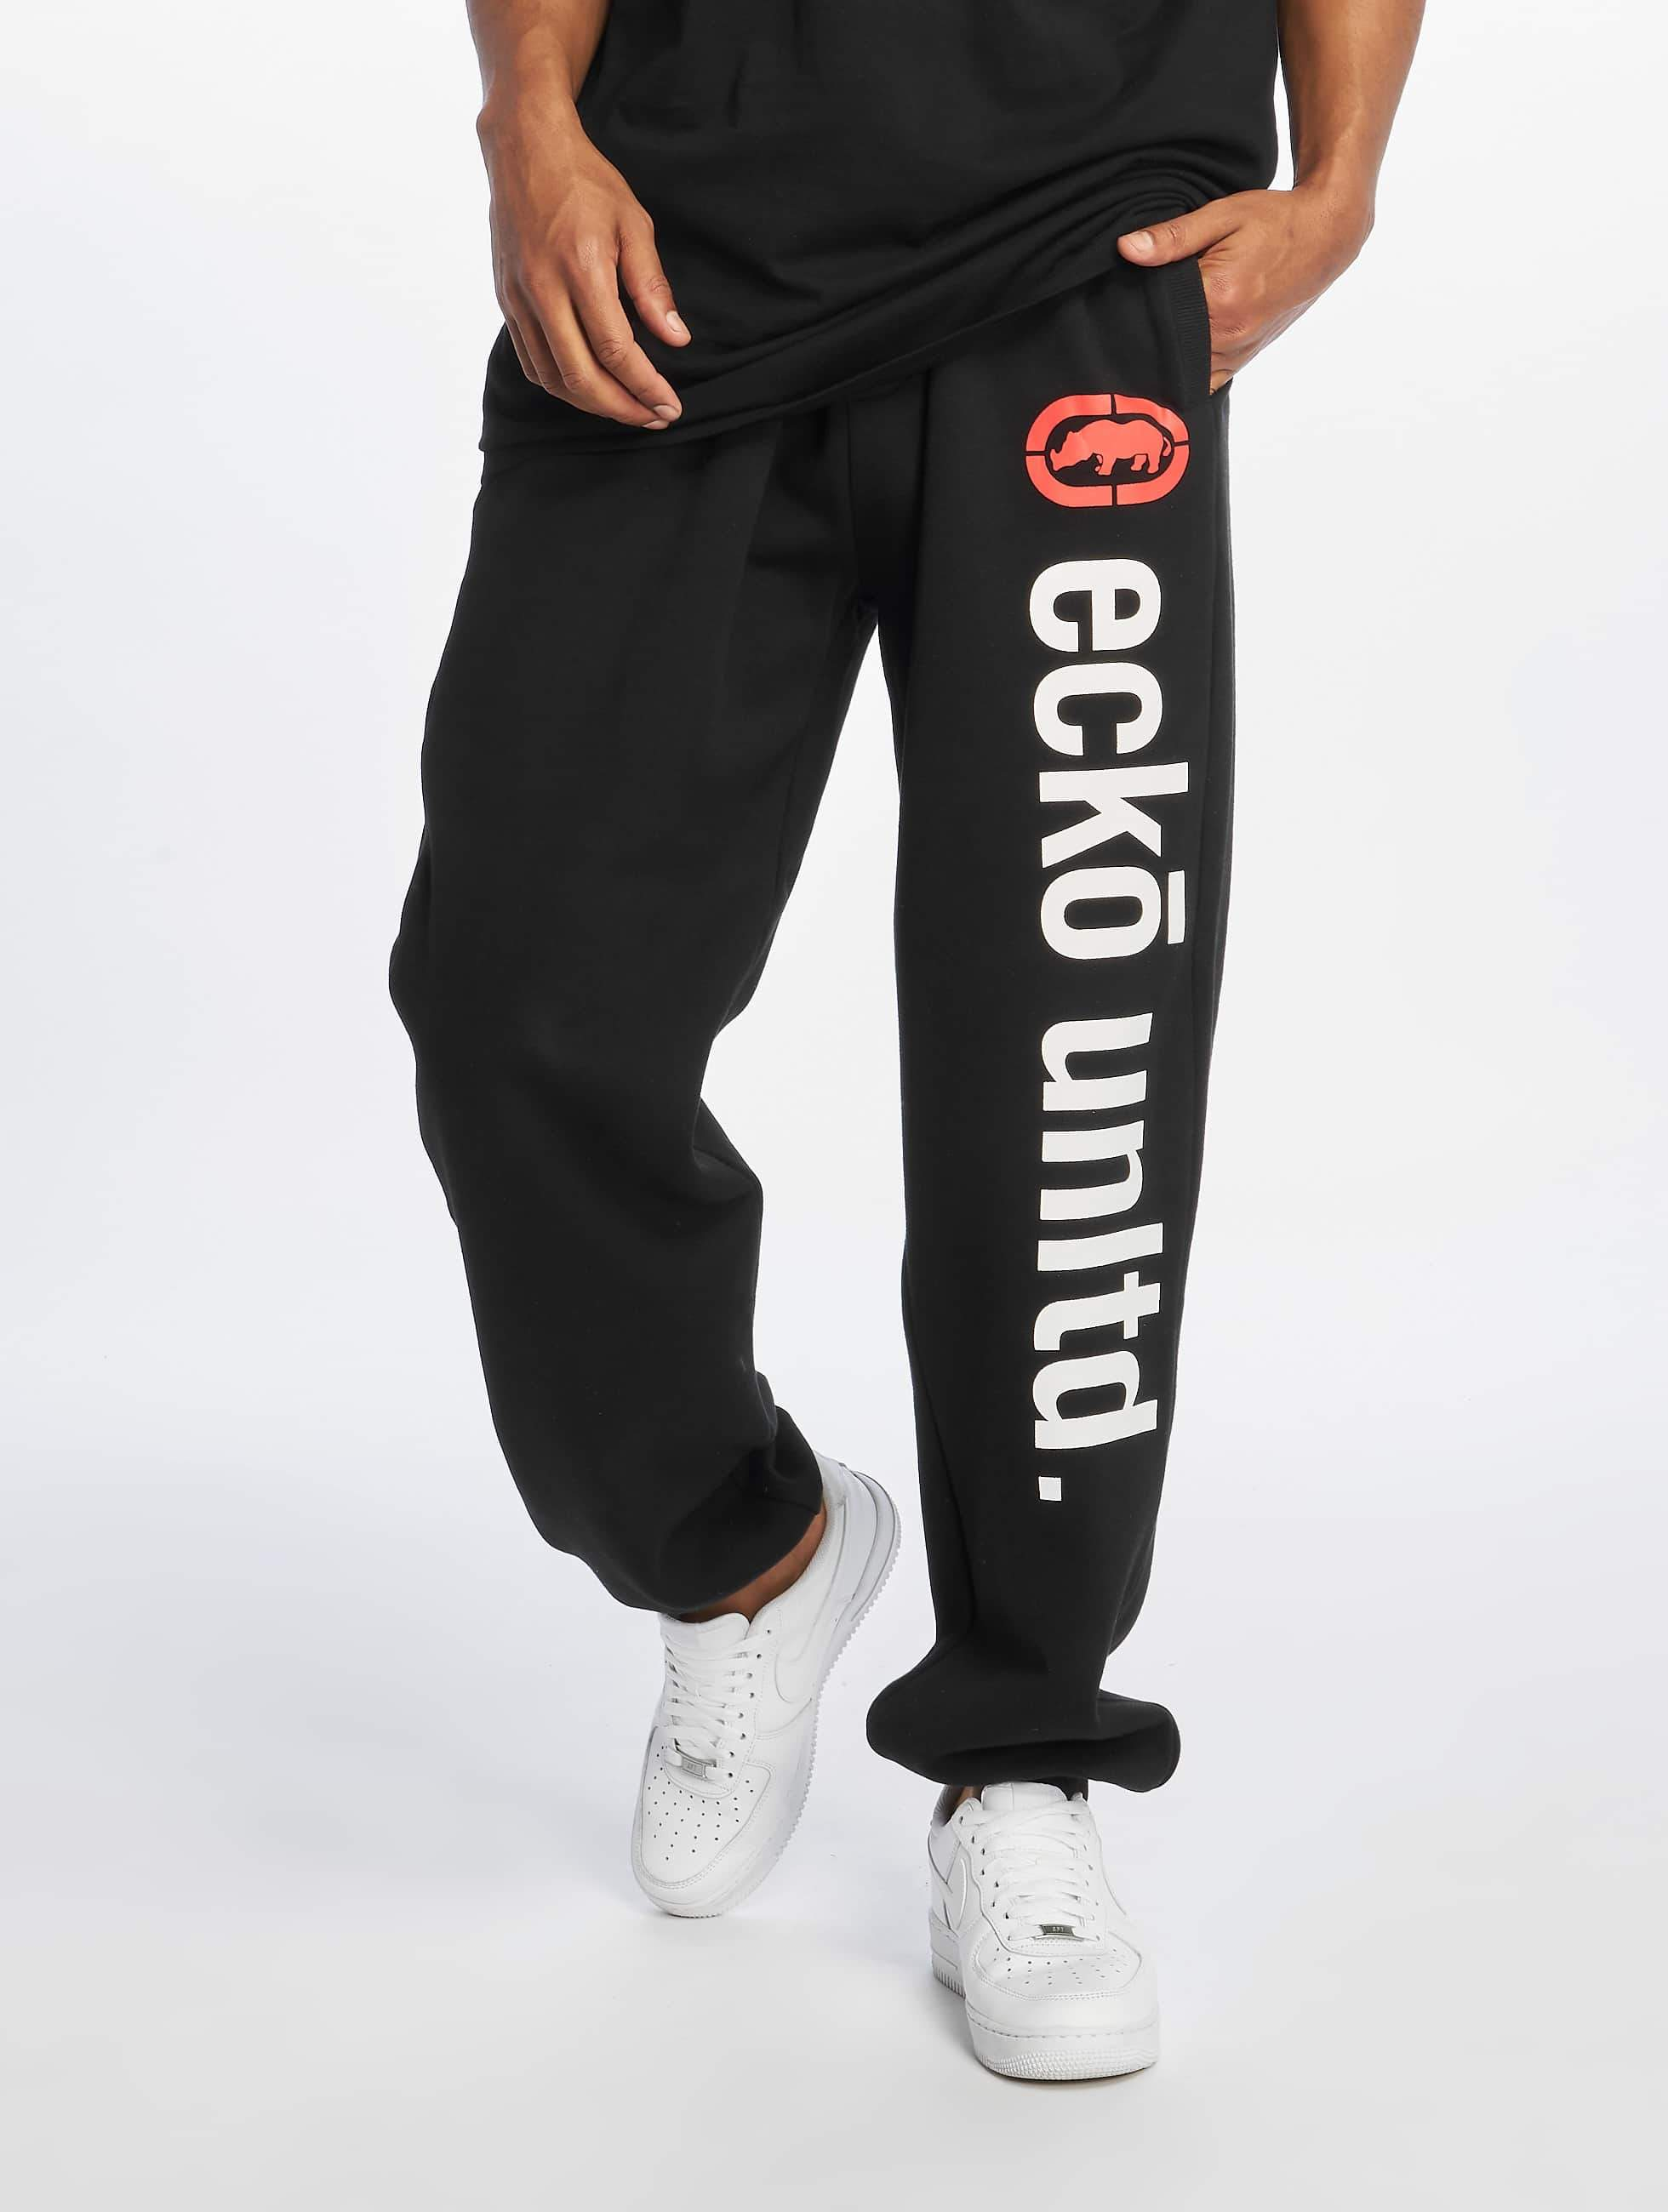 Ecko Unltd. / Sweat Pant 2Face in black 3XL